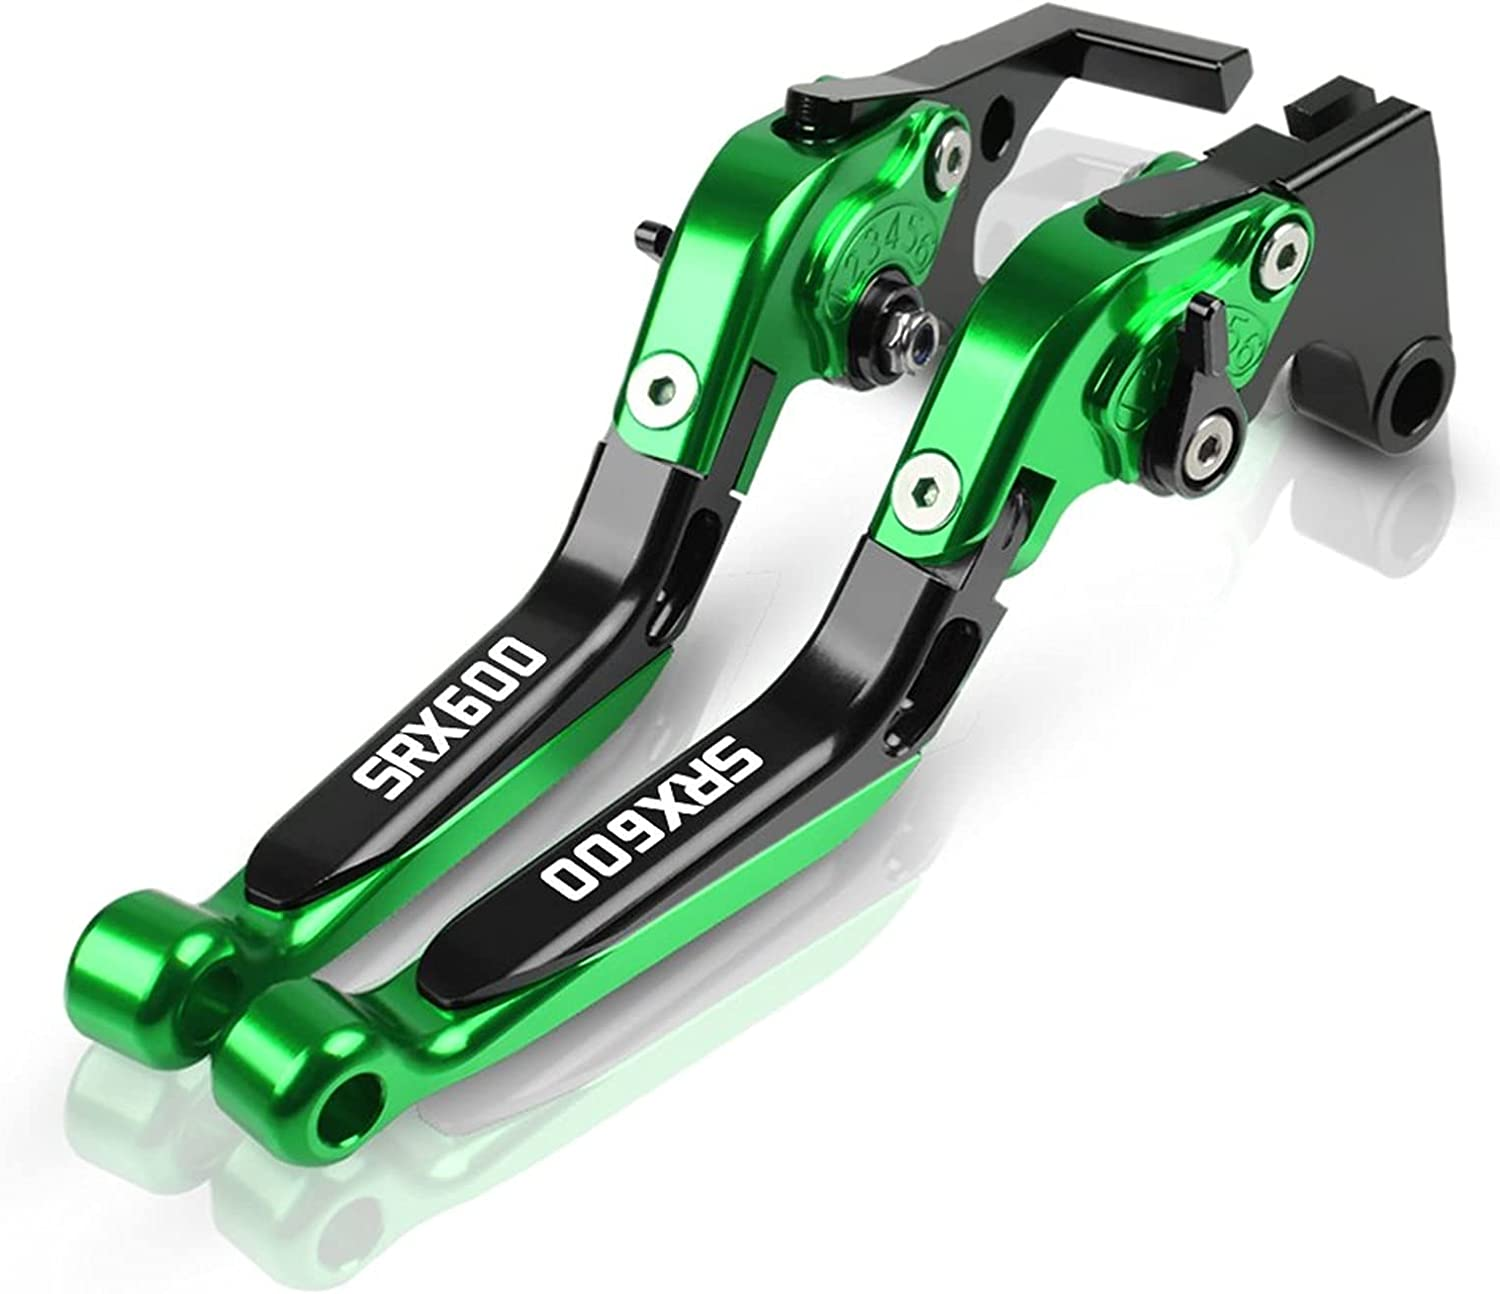 JHDS Sports Max 48% OFF High material Brake Clutch Extendable Adjustable Motorcycle Levers